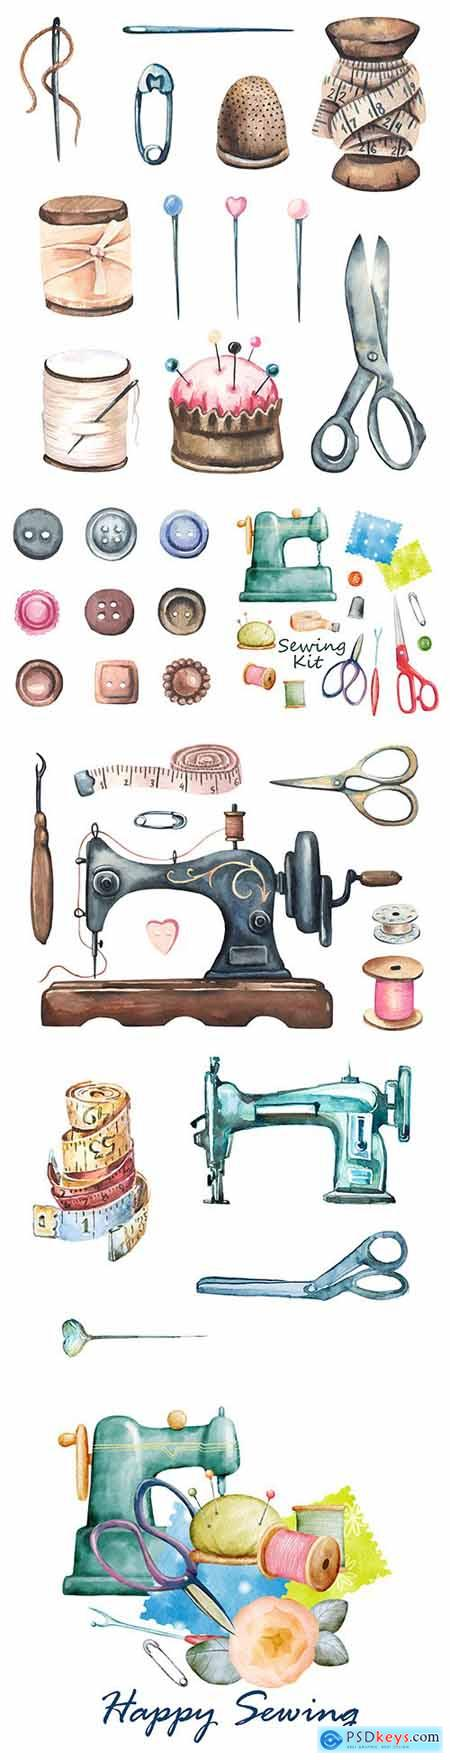 Sewing machines, buttons, pins ancient sewing set watercolor